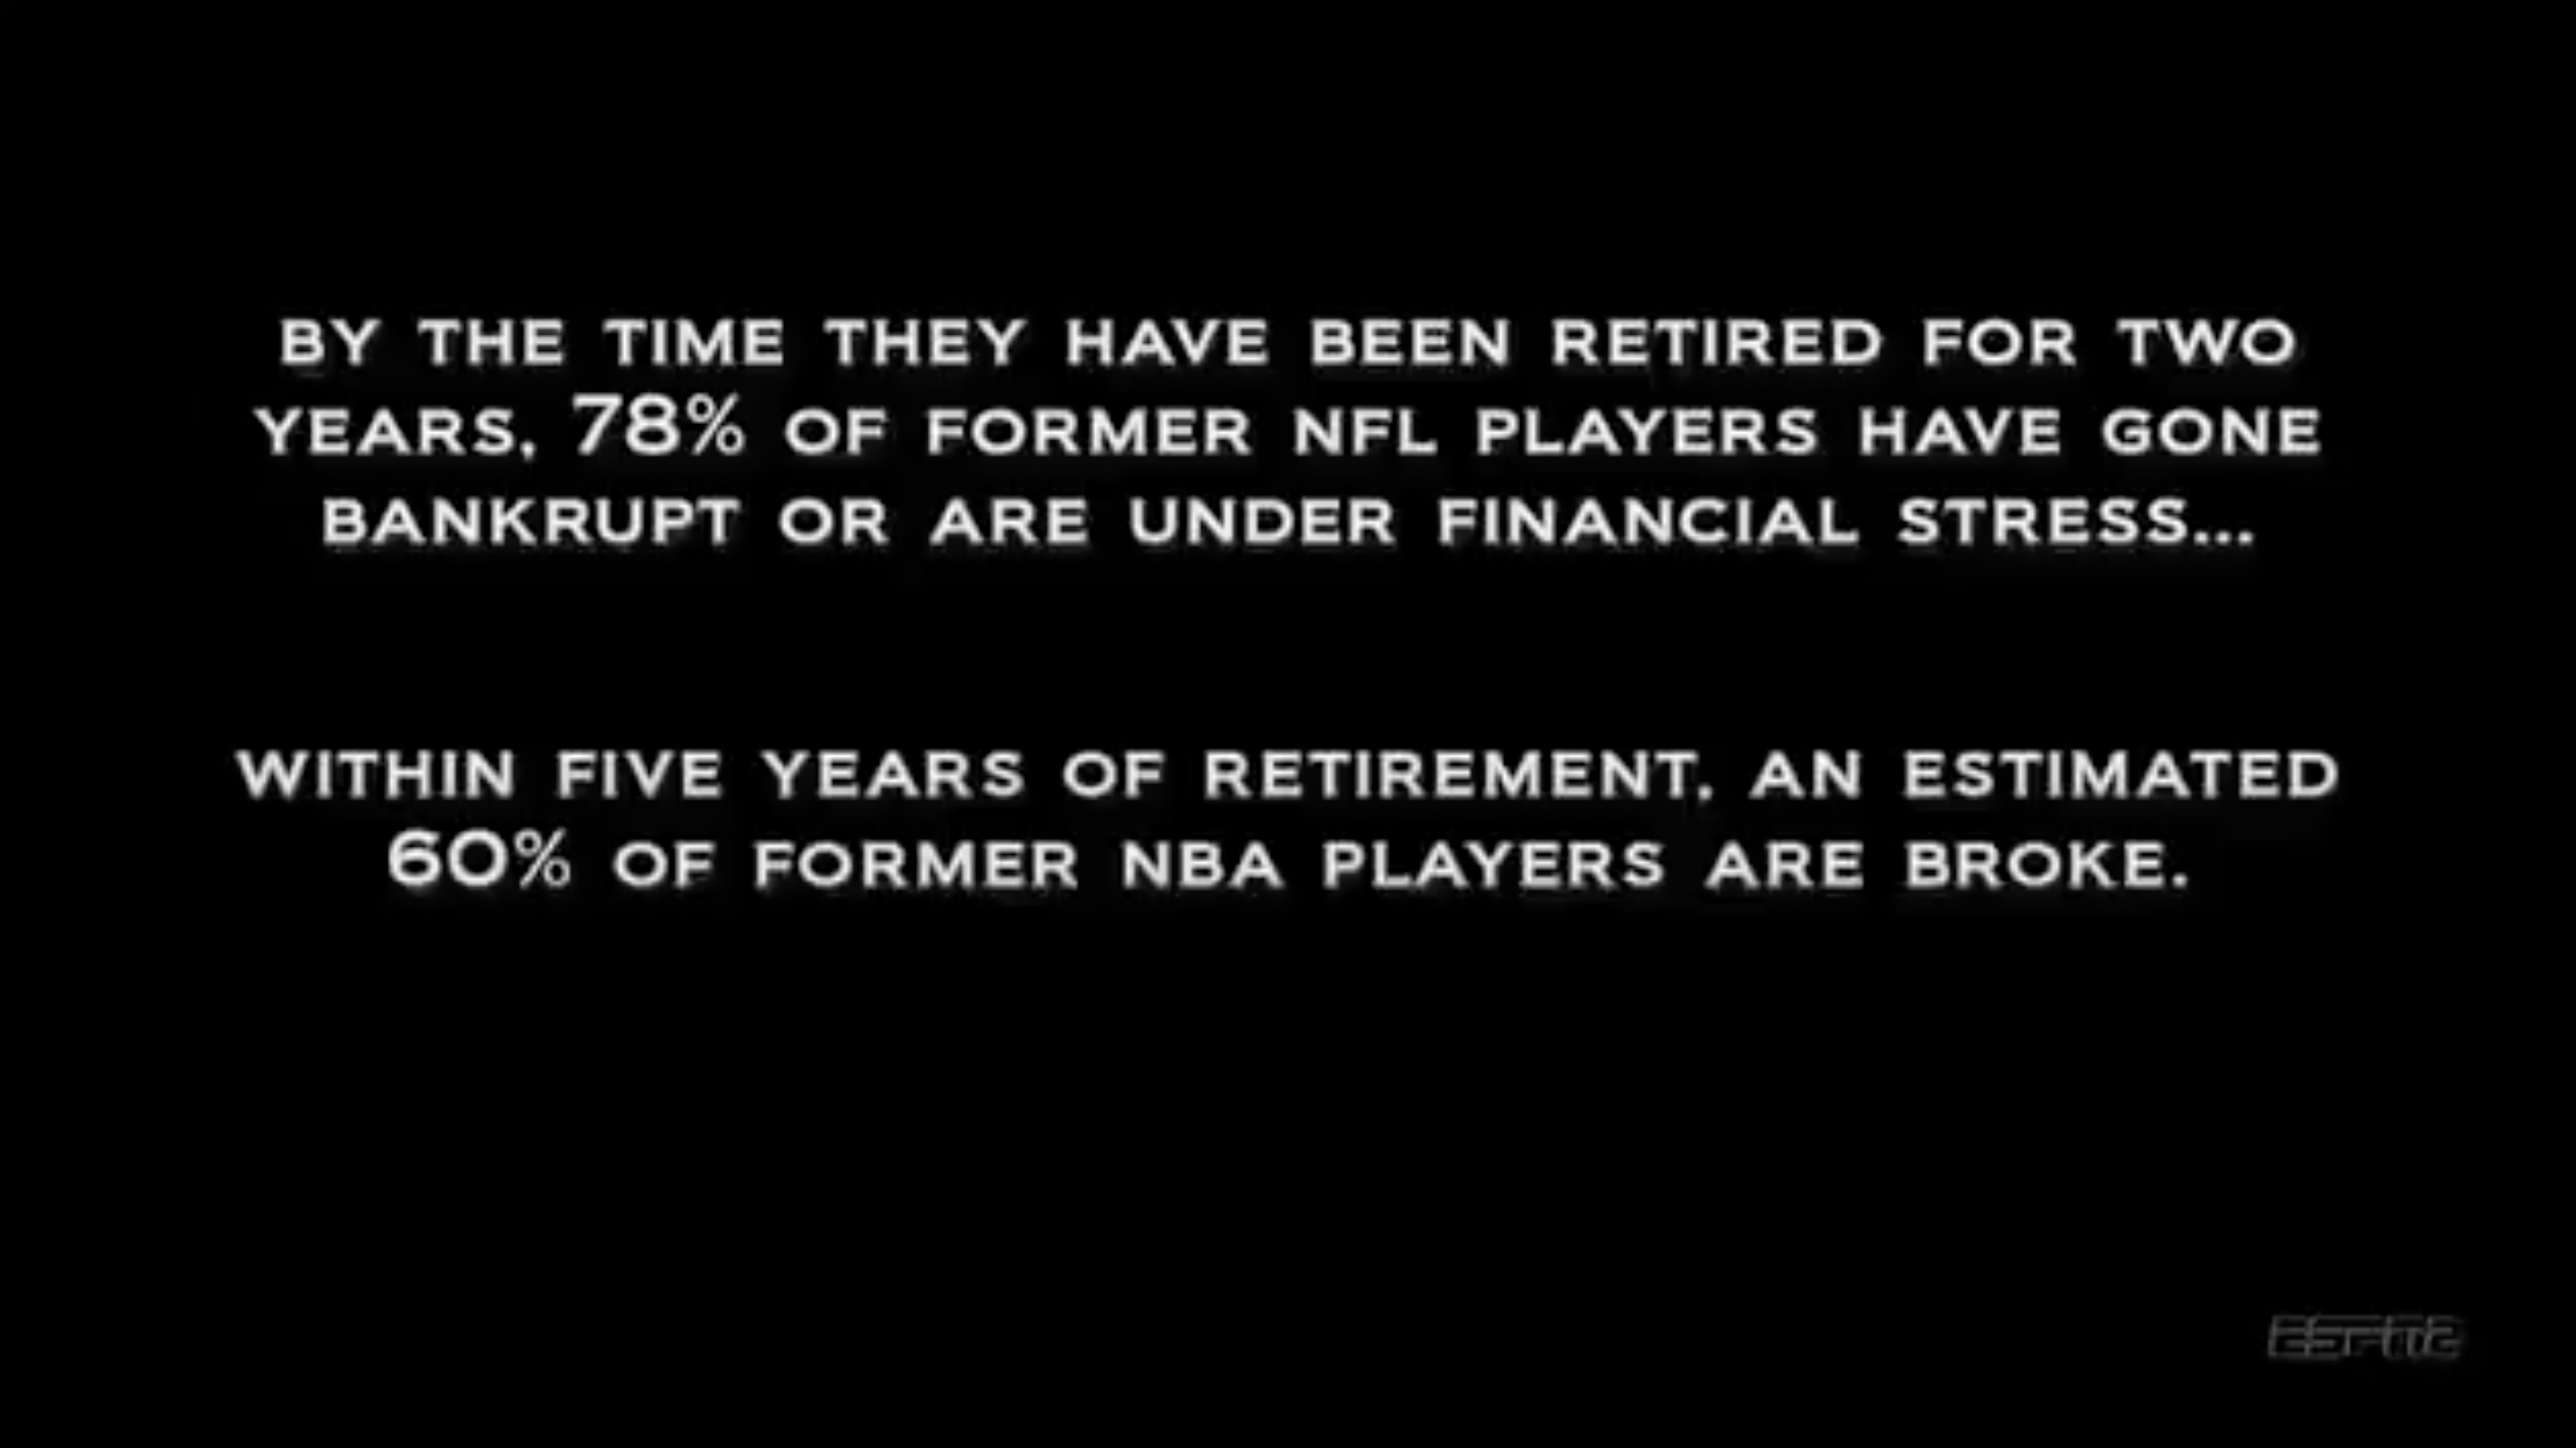 Within two years of retirement, 78% of former NFL players have gone bankrupt or are under financial stress. Within five years of retirement, and estimated 60% of former NBA players are broke